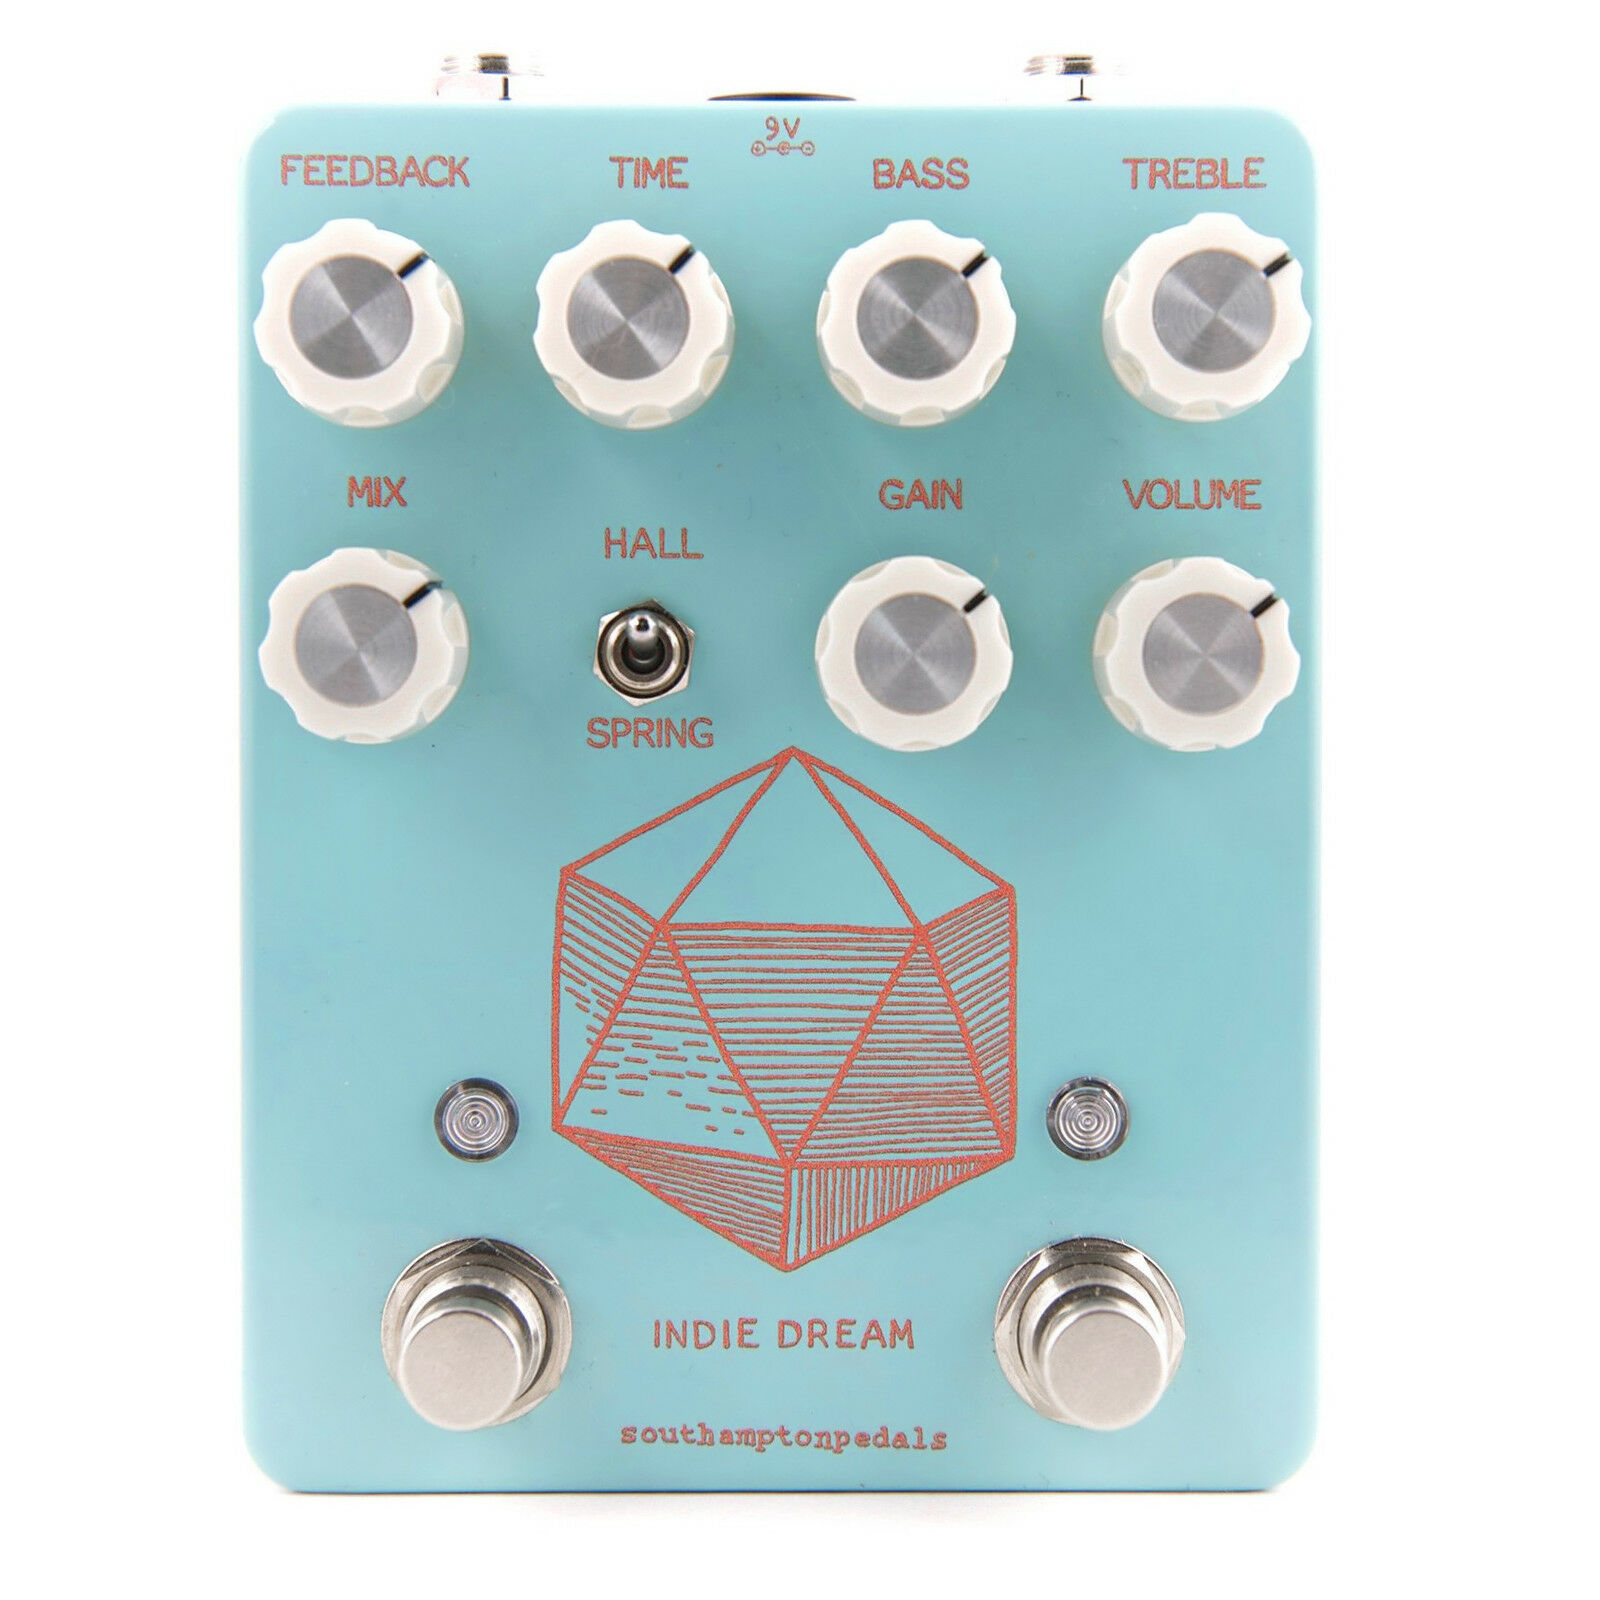 Southampton Pedals Indie Dream Overdrive, Delay & Reverb